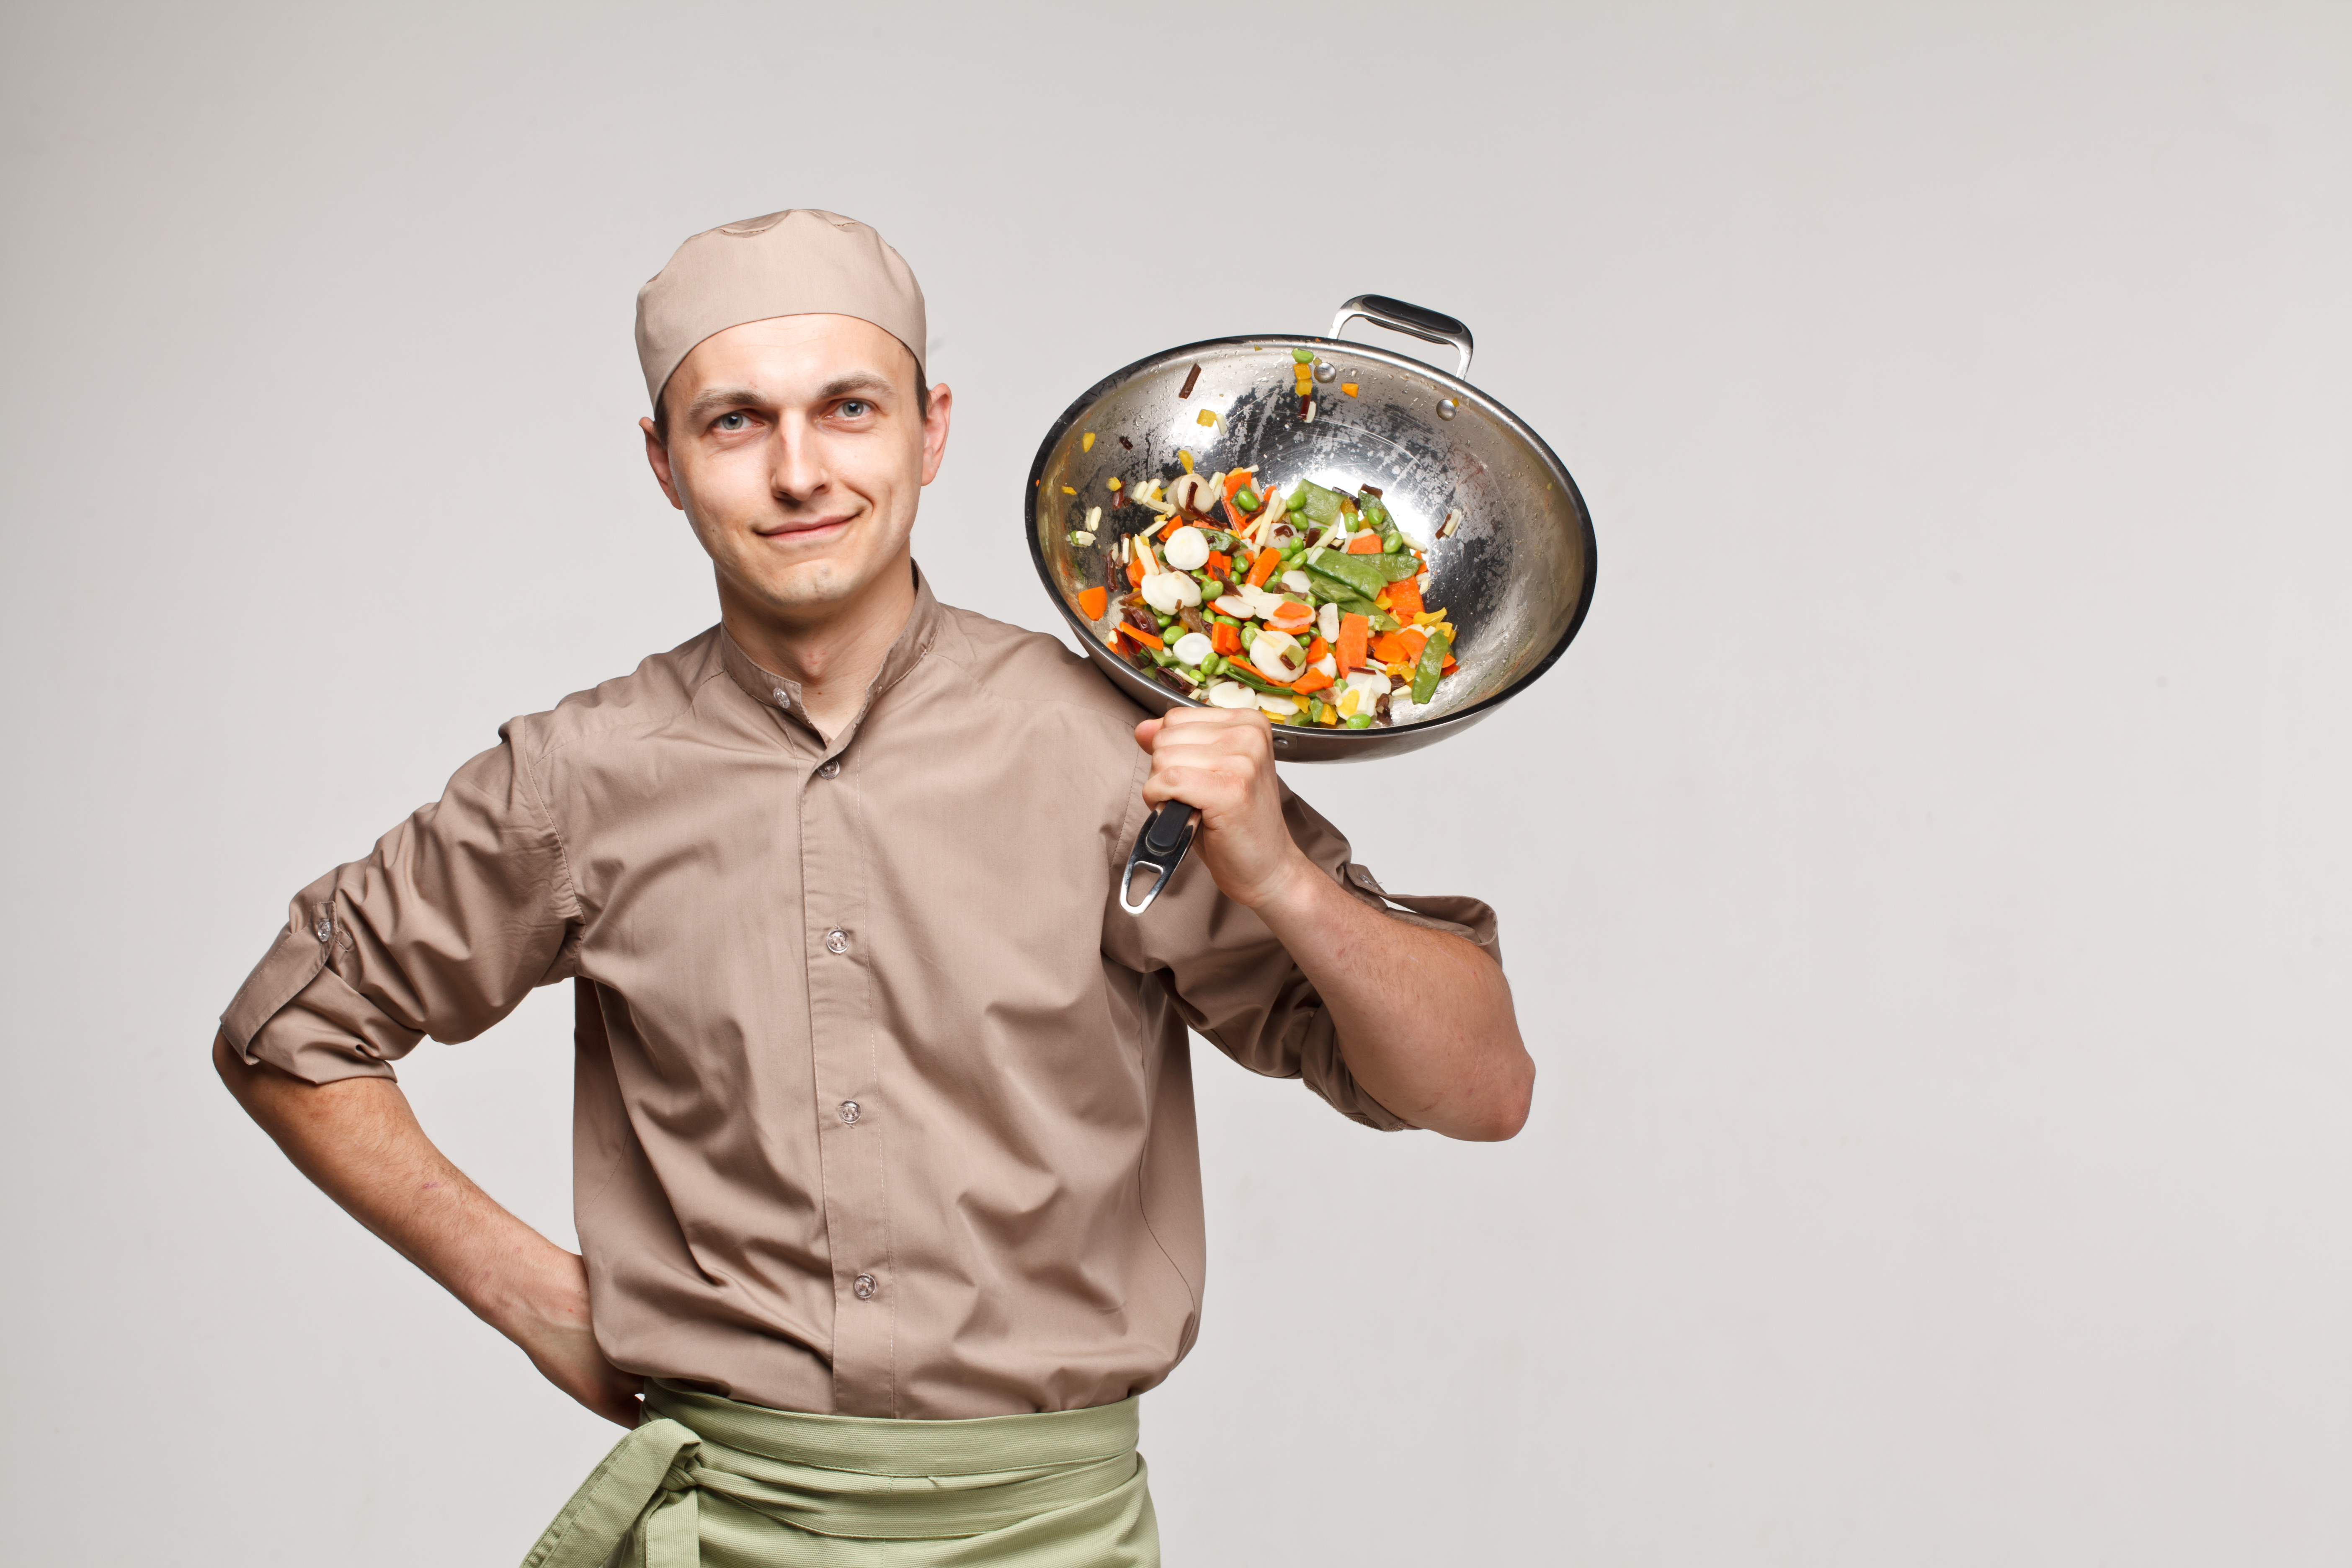 cooker chef tosses vegetables in pan